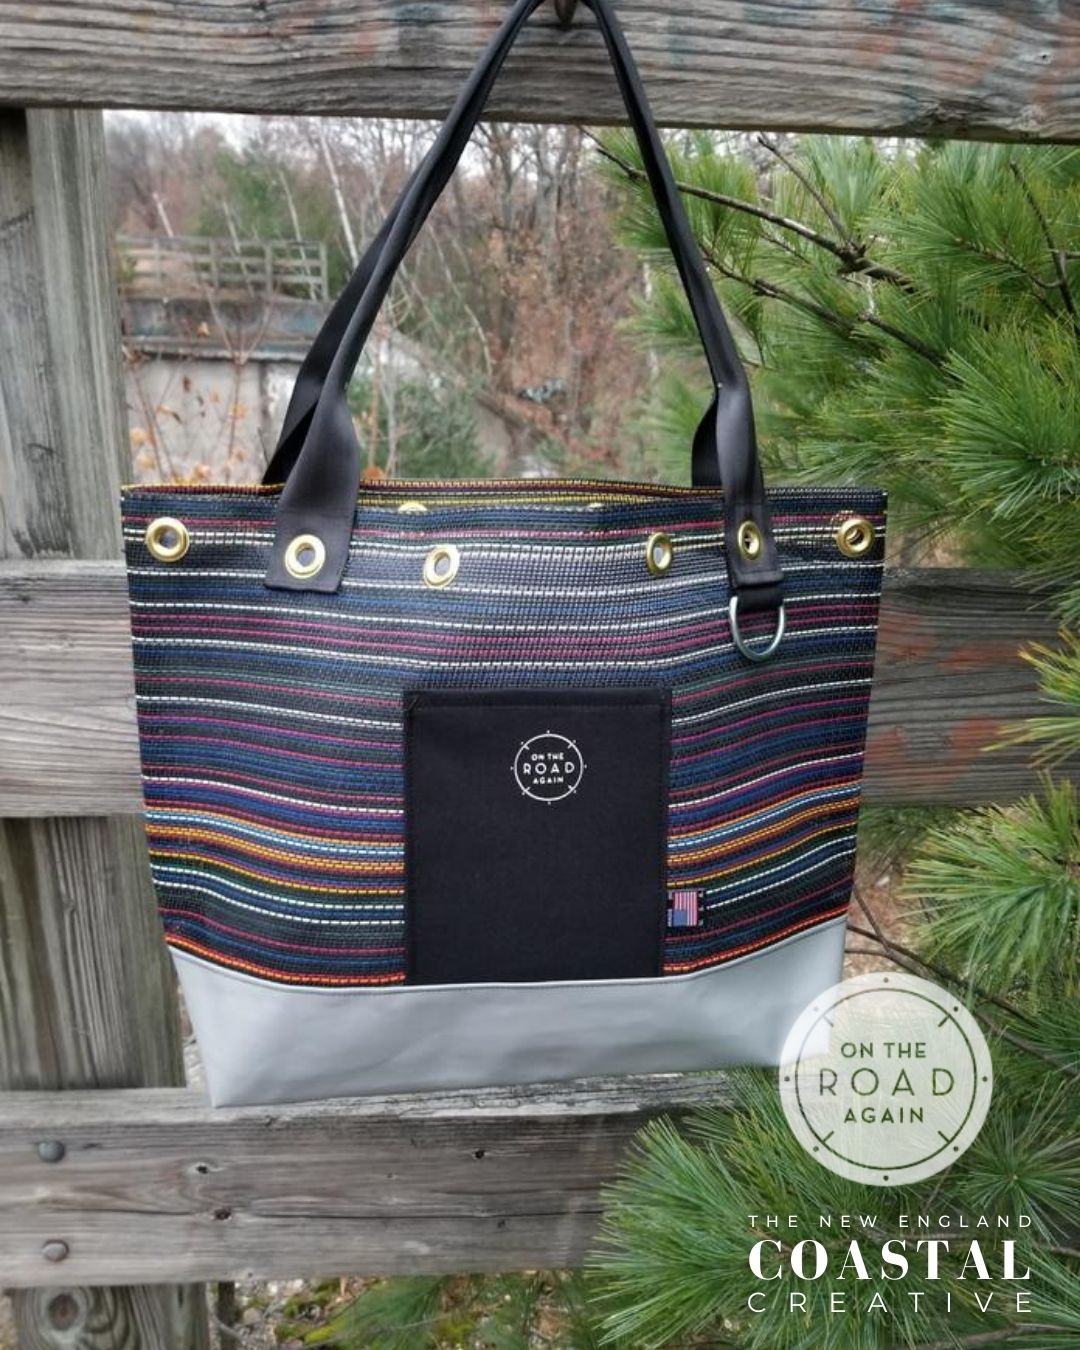 Mary-DiMauro-On-The-Road-Again-Bags-4